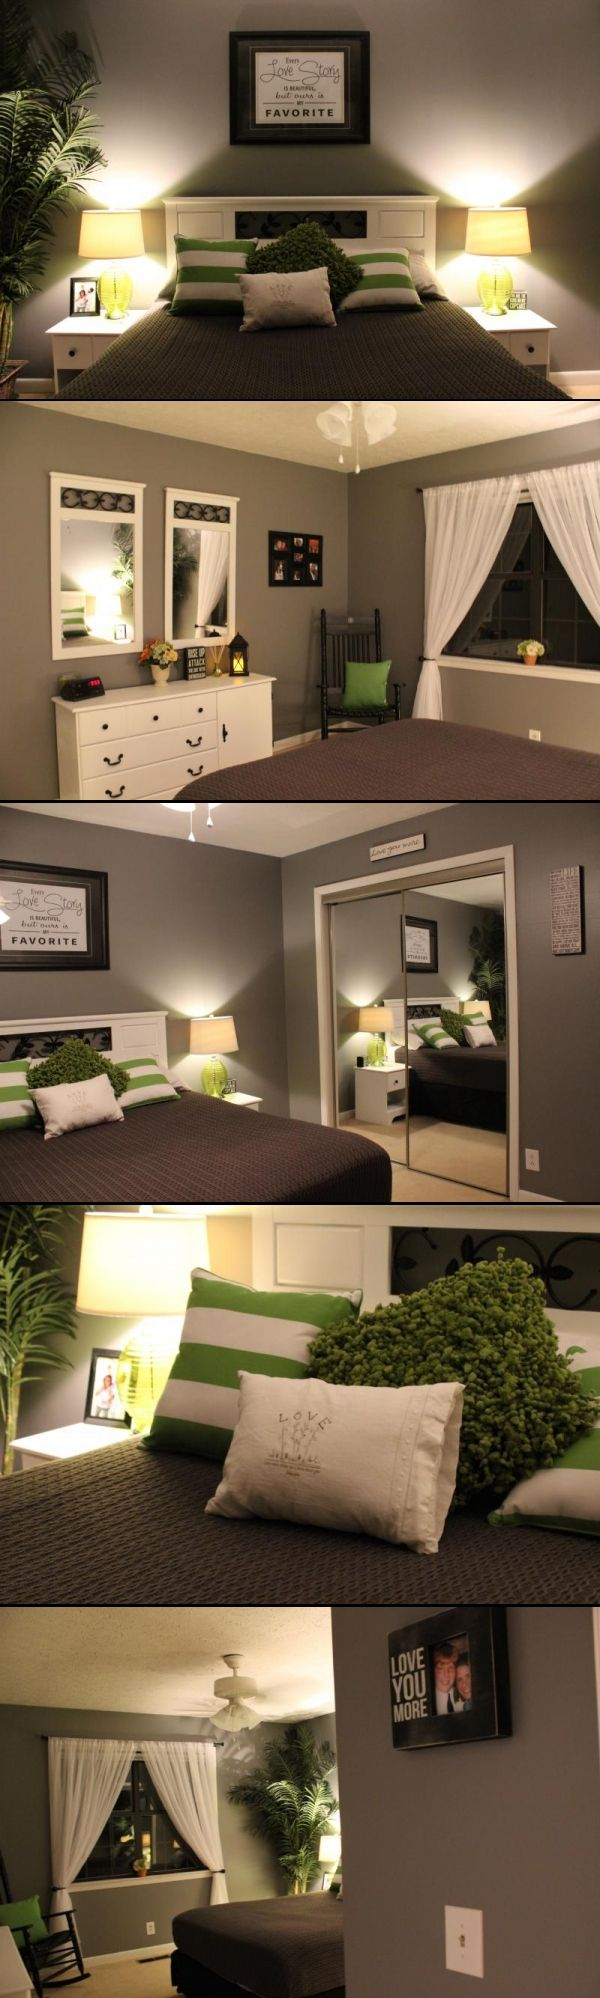 Gray And Green Bedroom I Like The Grey Wall Colour